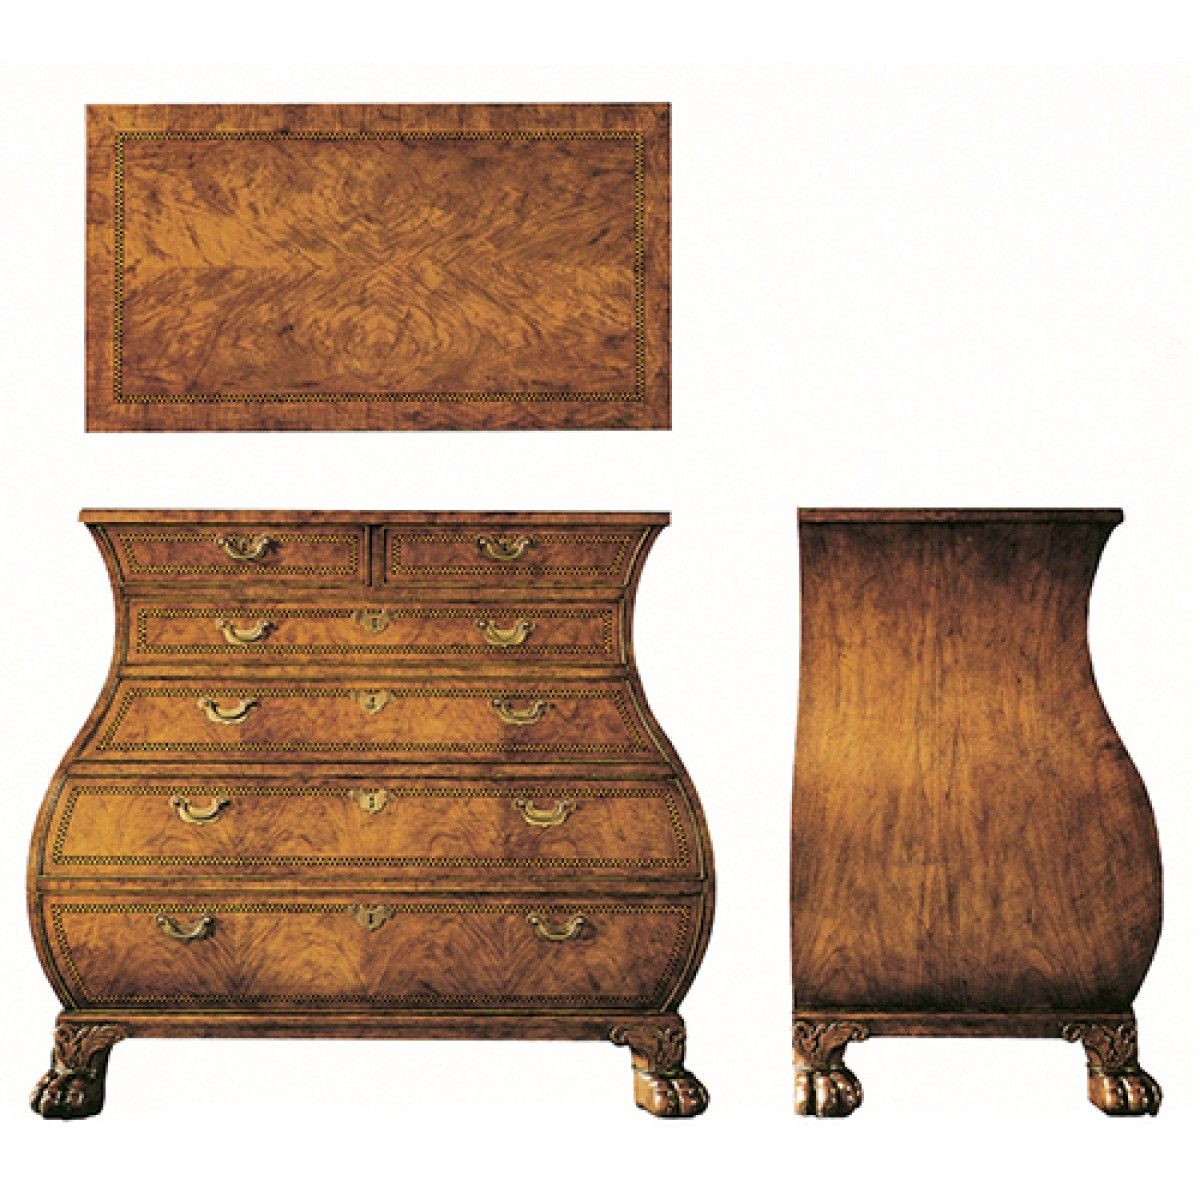 Shop For Baker Bombe Chest, And Other Bedroom Bombe Chests At Hickory  Furniture Mart In Hickory, NC. The Bombe Chest By Baker Is An Elegant And  Balanced ...